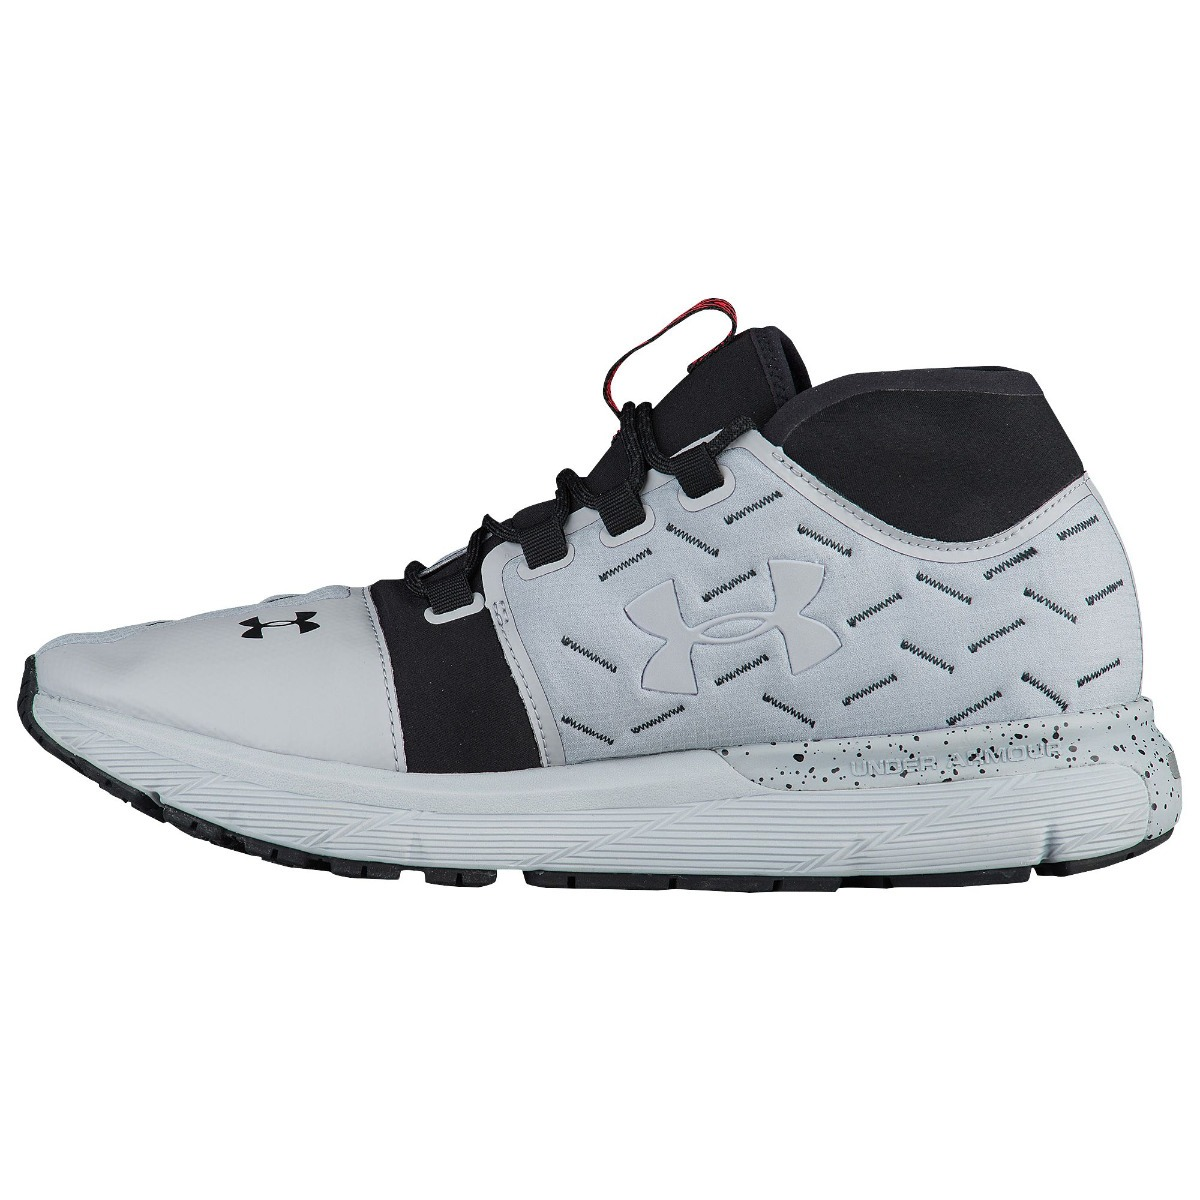 the latest 4d3b6 dbfb6 Tênis Under Armour Charged Reactor Run Masculino Corrida